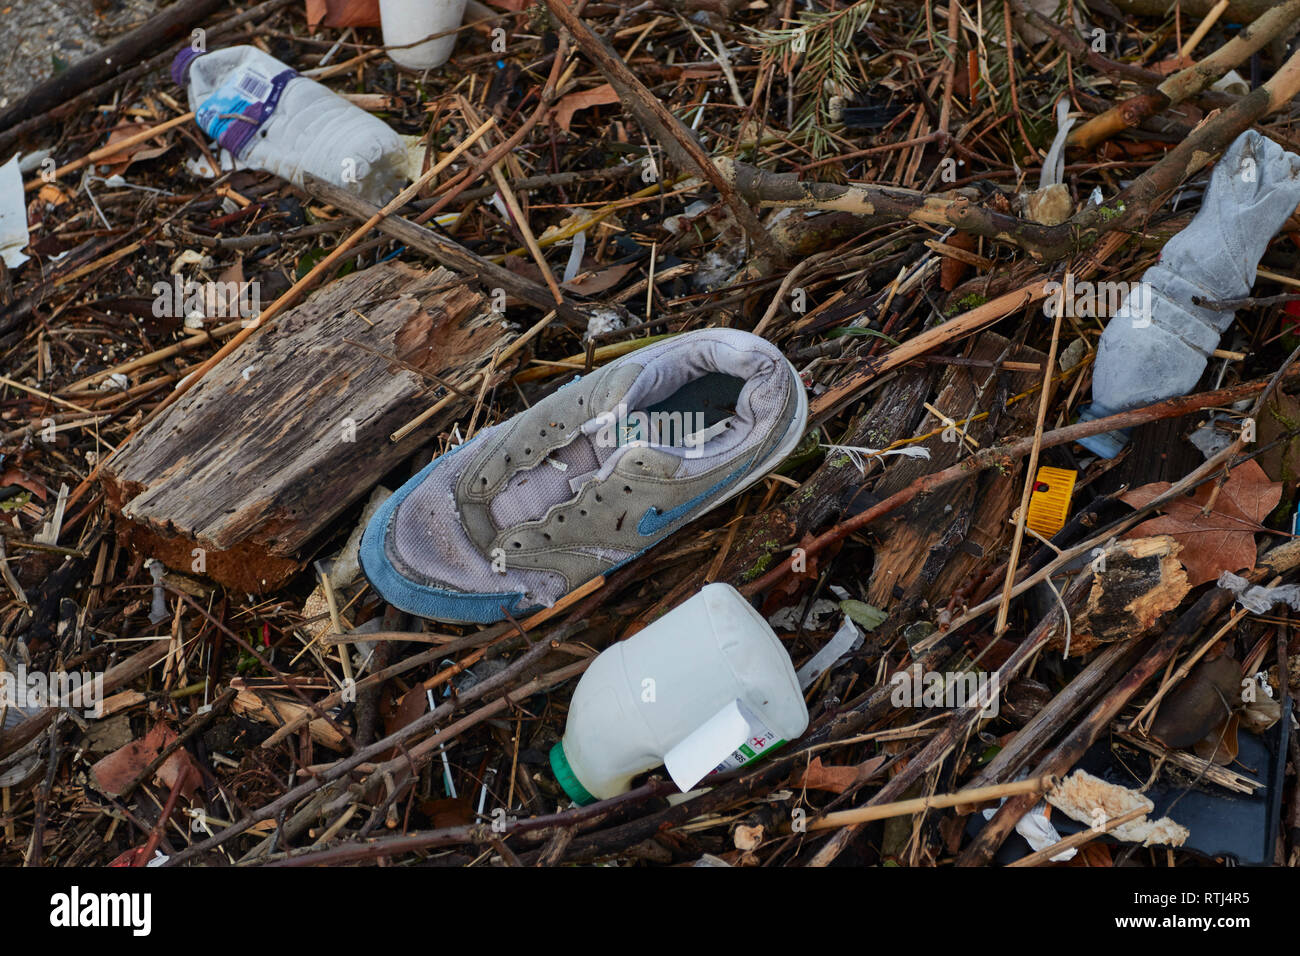 Plastic environmental waste along the Thames in London, England, United Kingdom, Europe - Stock Image